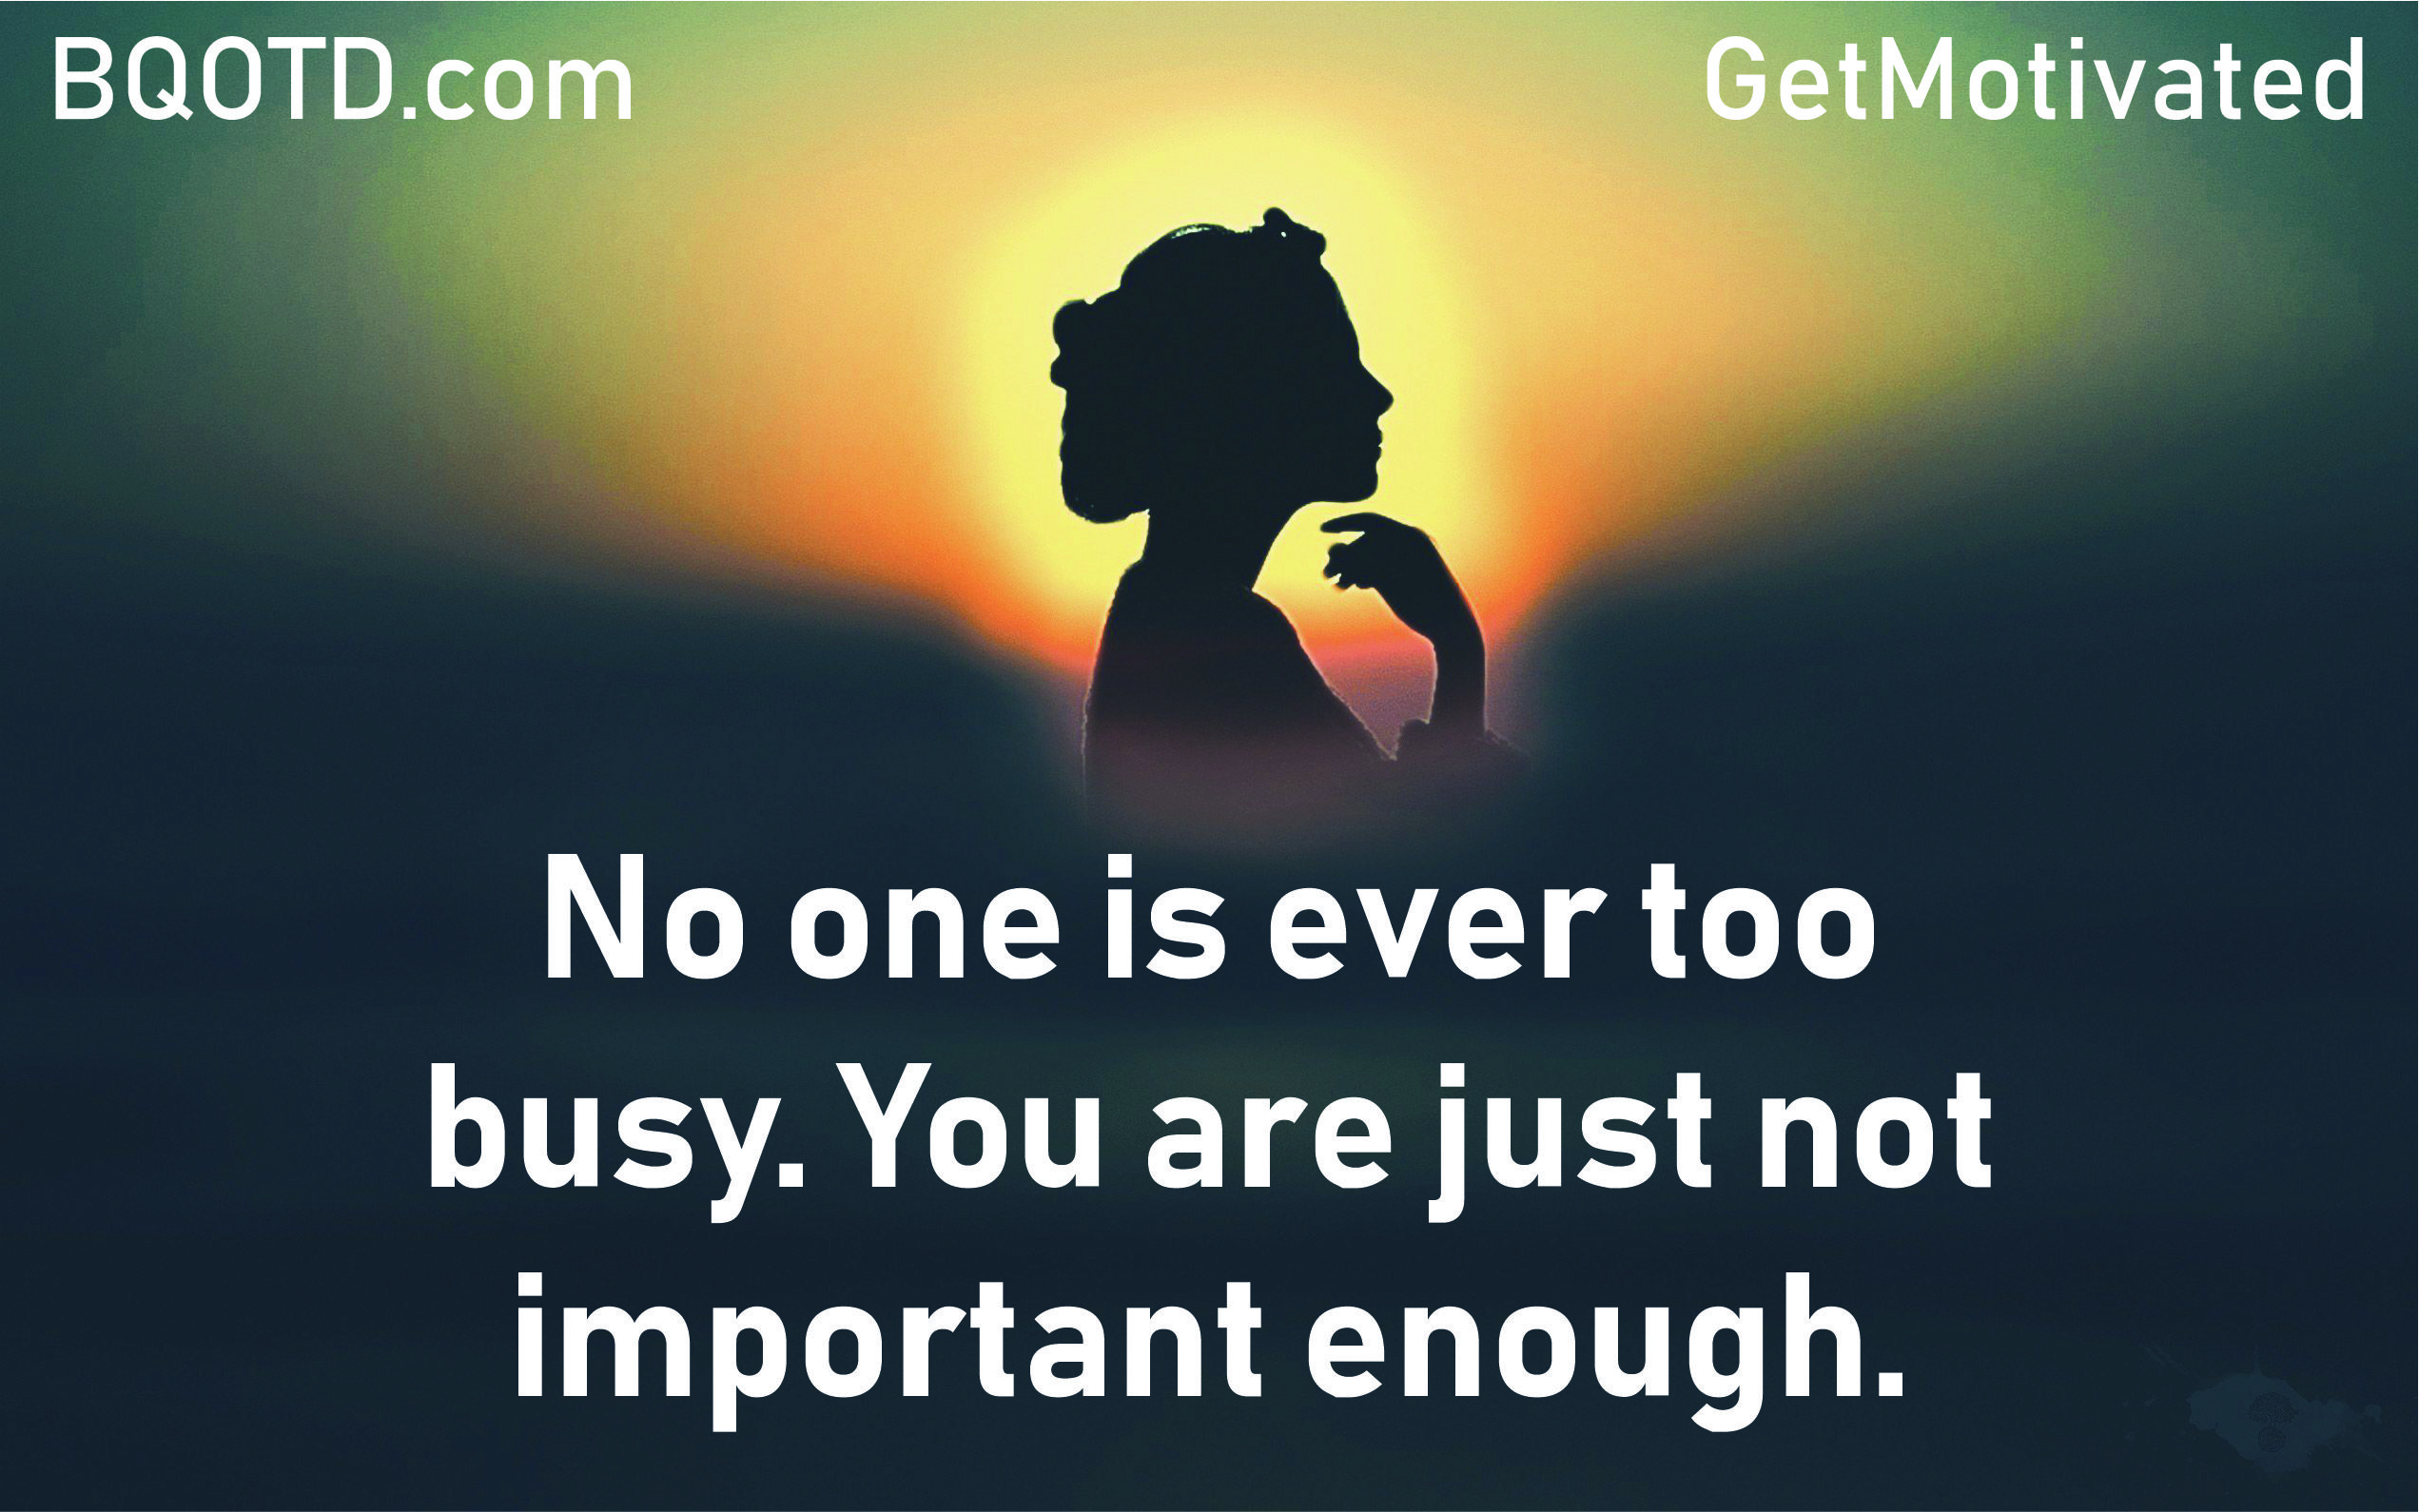 is ever too You are just not enough is ever too You are just not enough